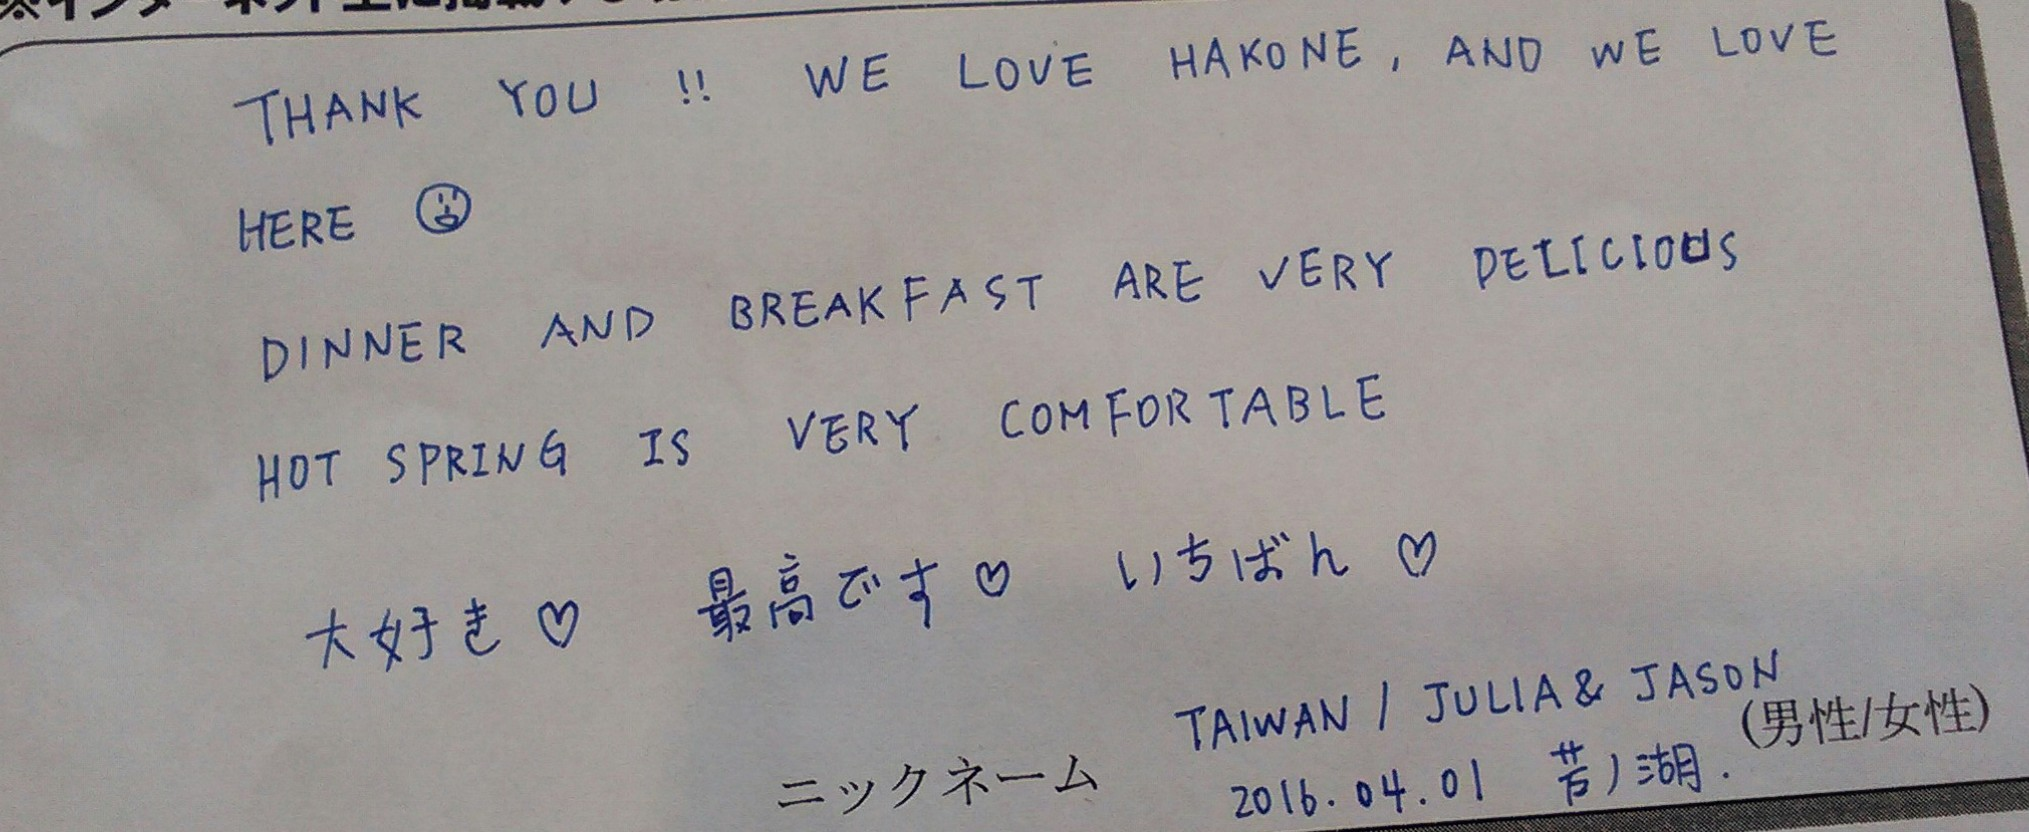 THANK YOU !! WE LOVE HAKONE AND WE LOVE HERE <br />